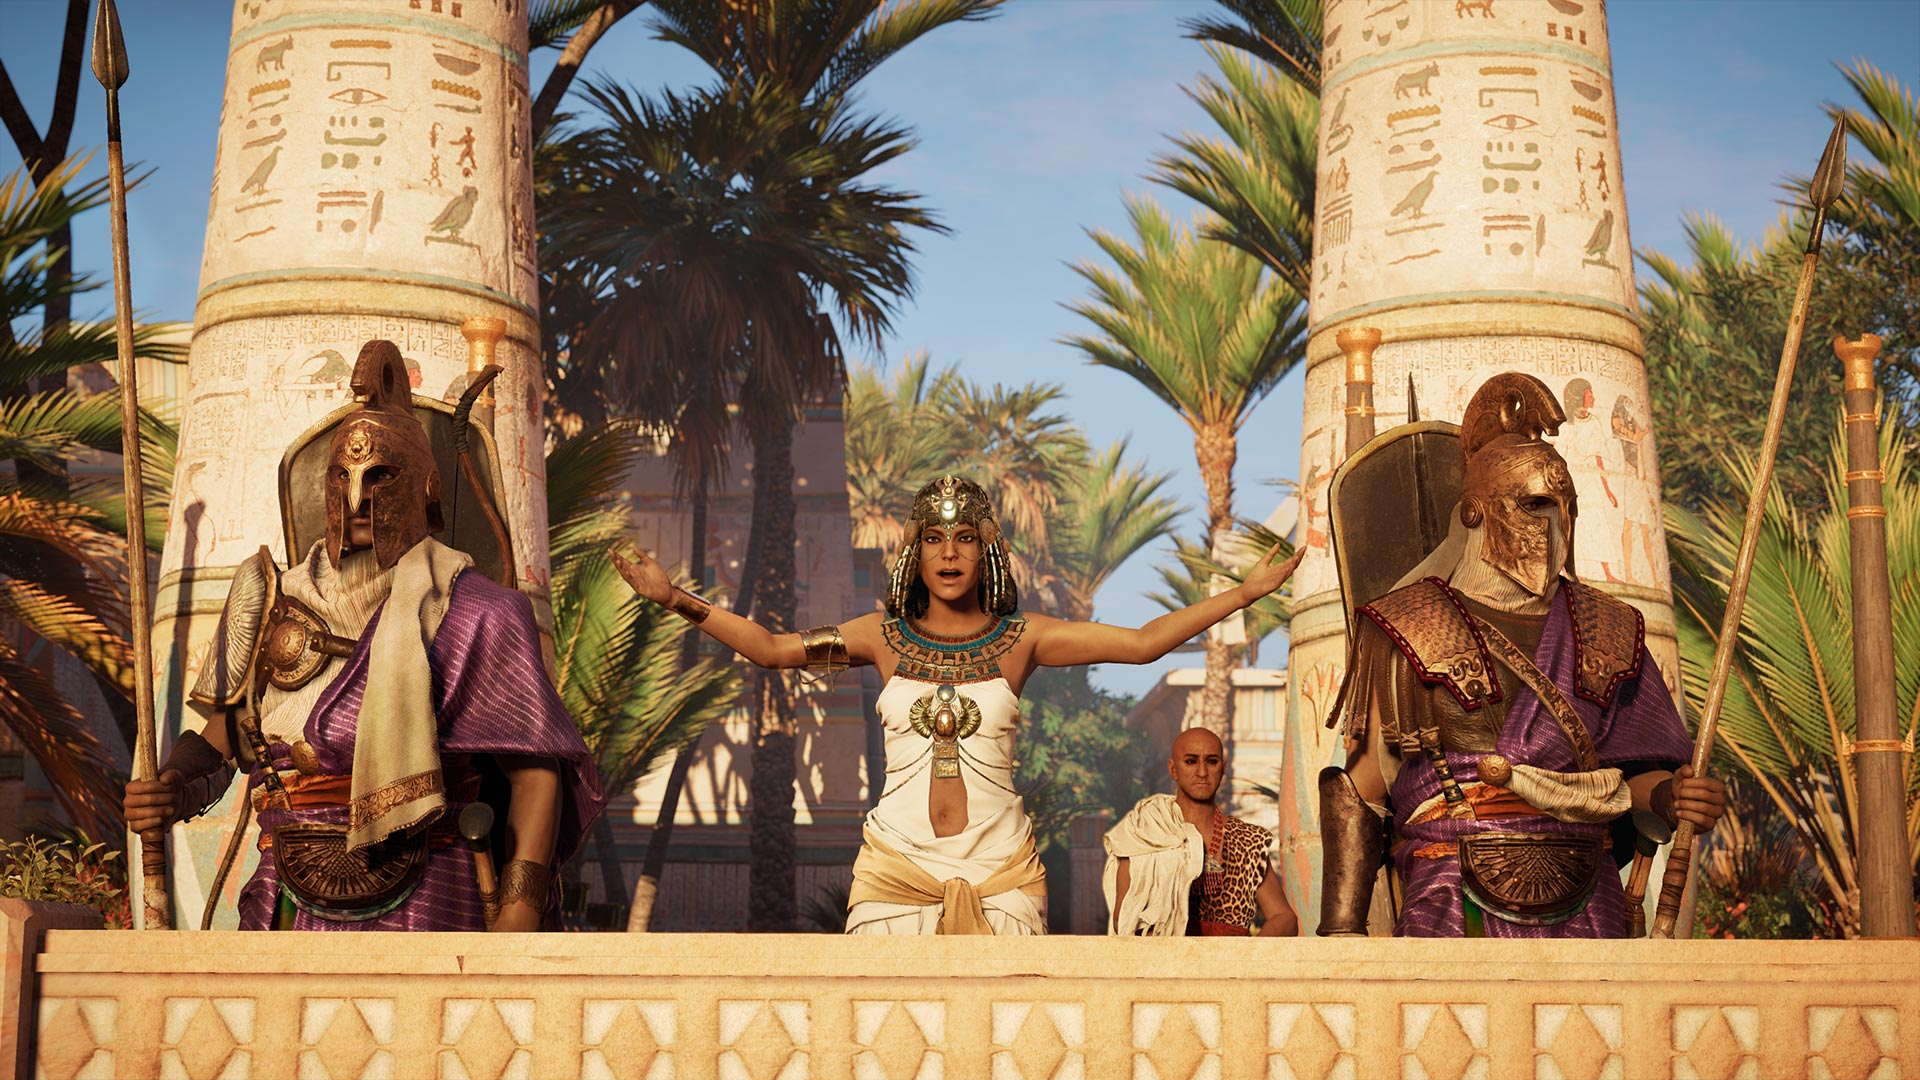 https://ubistatic19-a.akamaihd.net/resource/ja-jp/game/assassins-creed/ac-origins/ac_media_preview-cleo-speech_ncsa.jpg